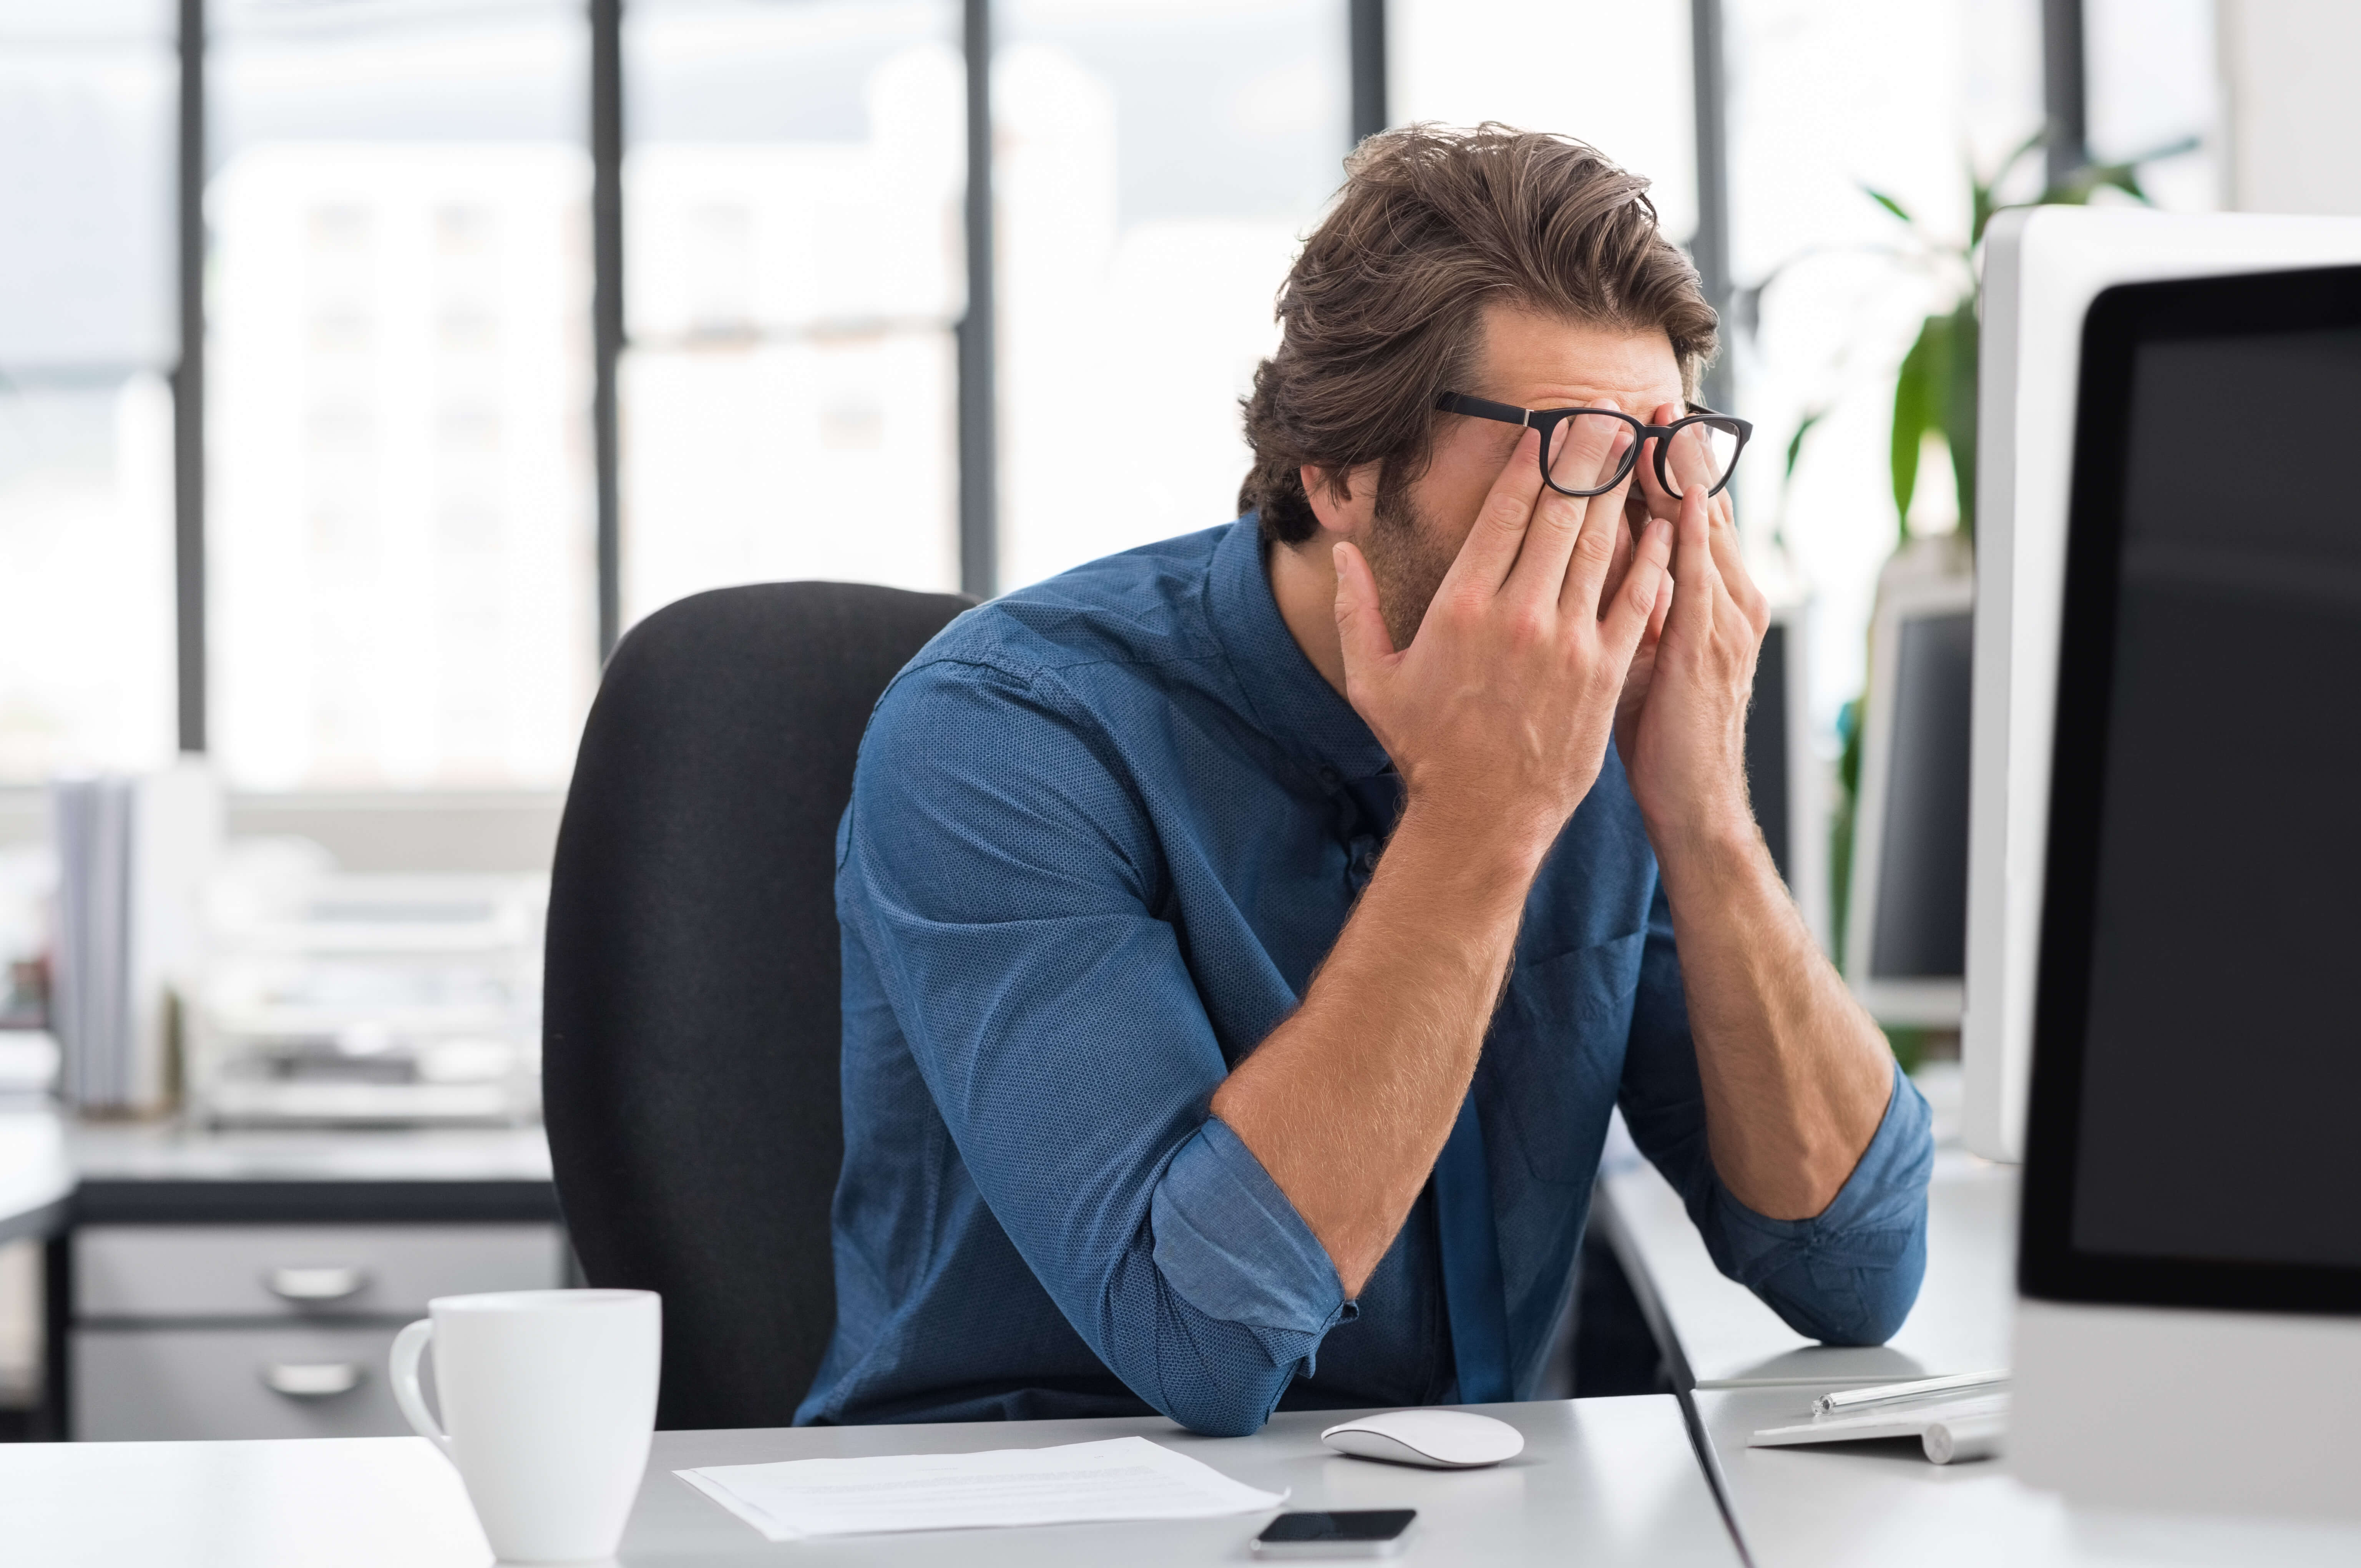 How To Repair Your Credit >> 8 Ways to Reduce Eye Strain